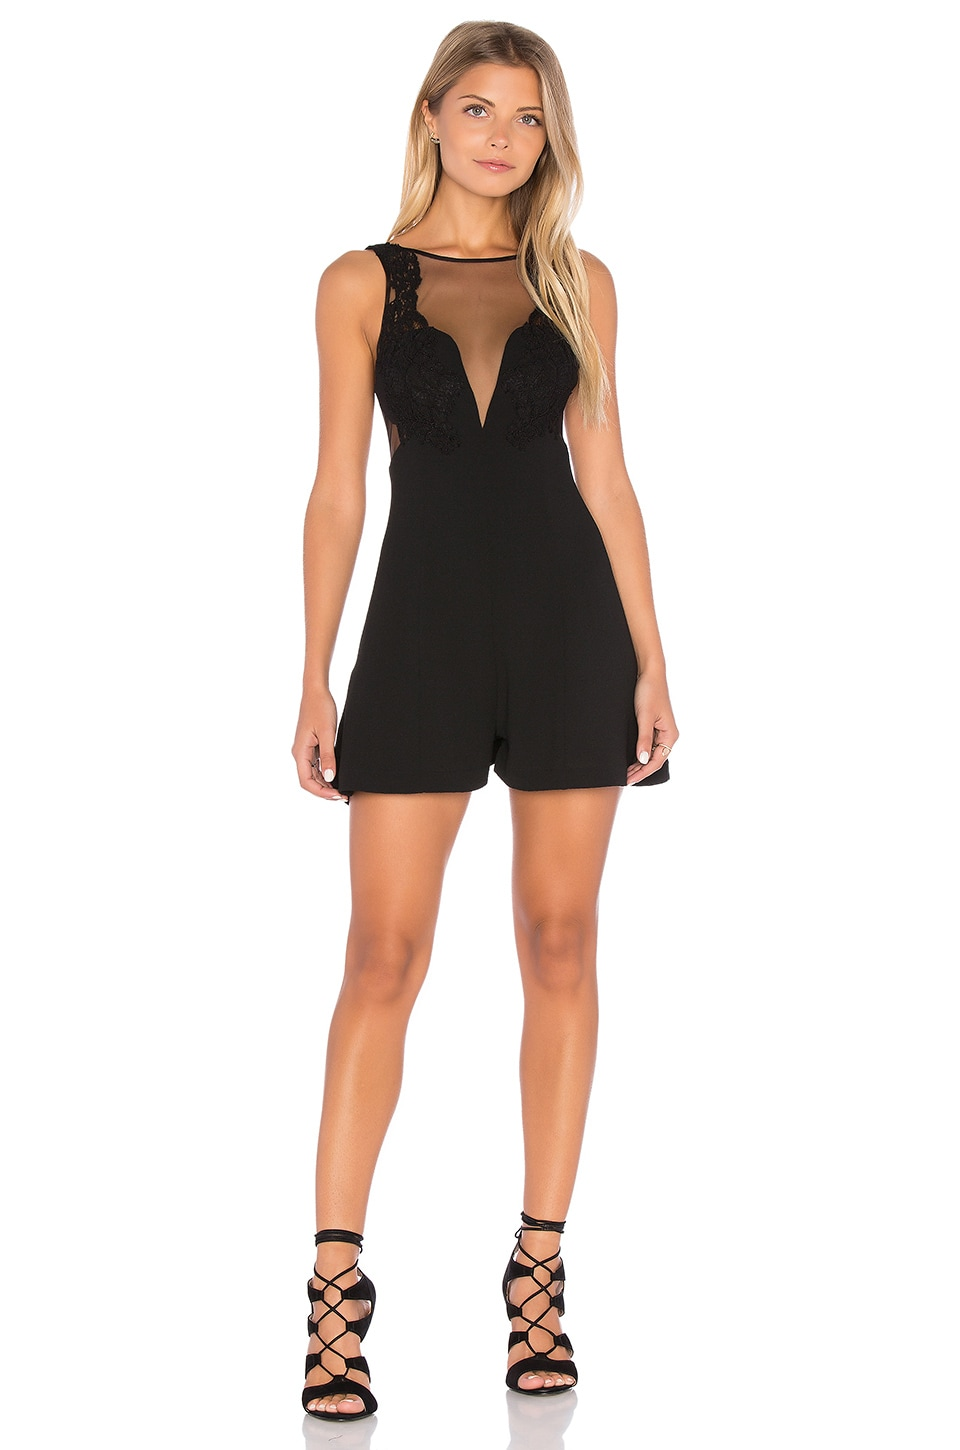 Wildest Dreams Romper by Alice McCall